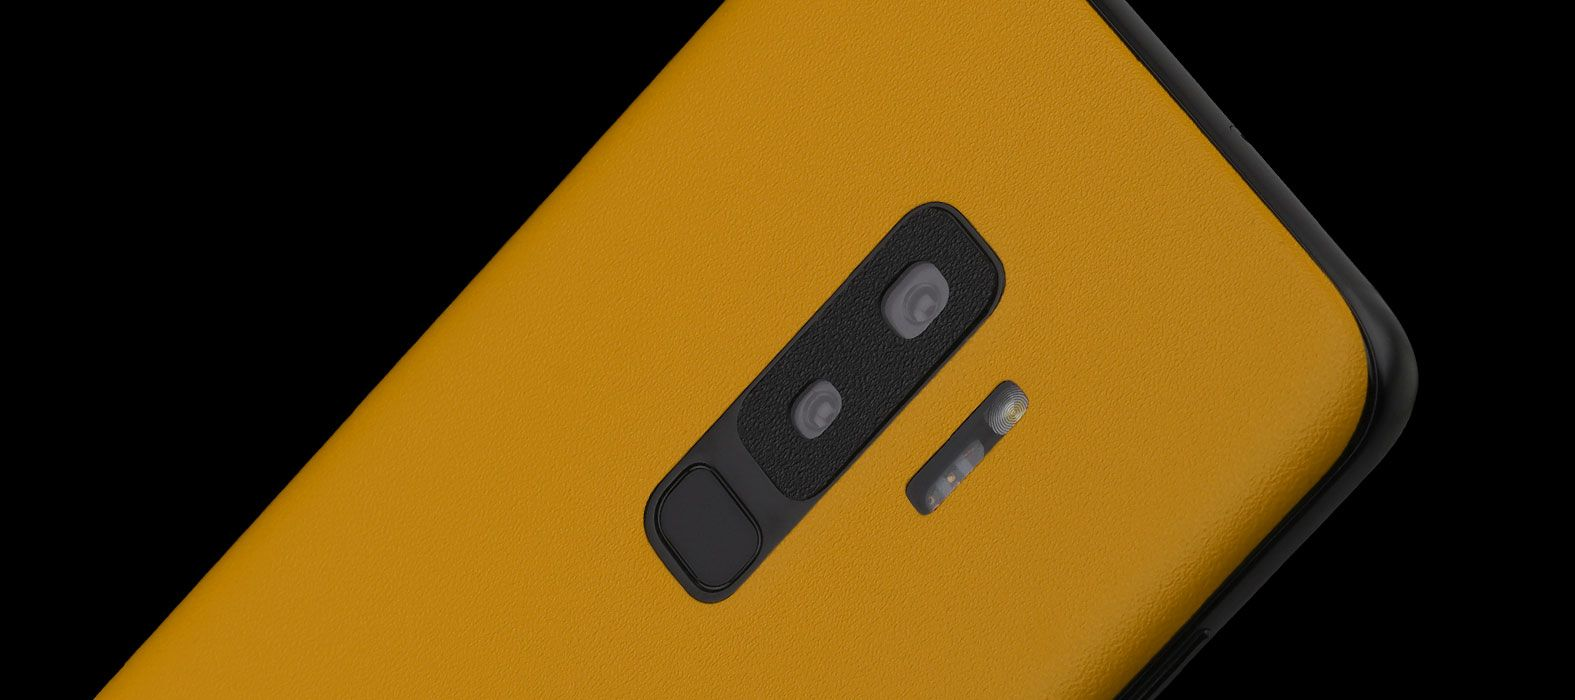 Galaxy S9 Plus Skins, Wraps - Sandstone Yellow